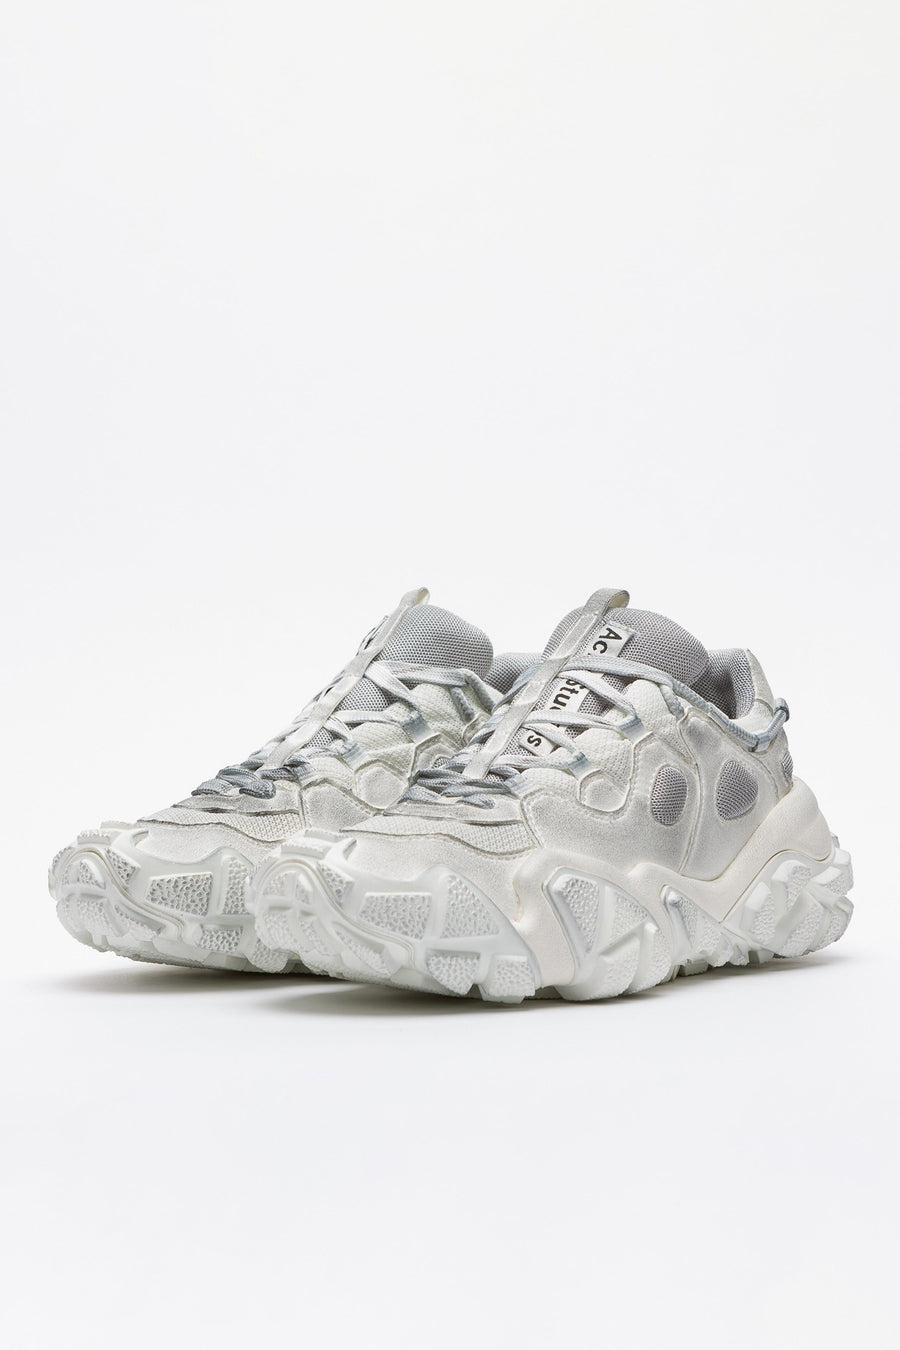 Acne Studios Boltzer W Tumbled Technical Sneakers in White - Notre